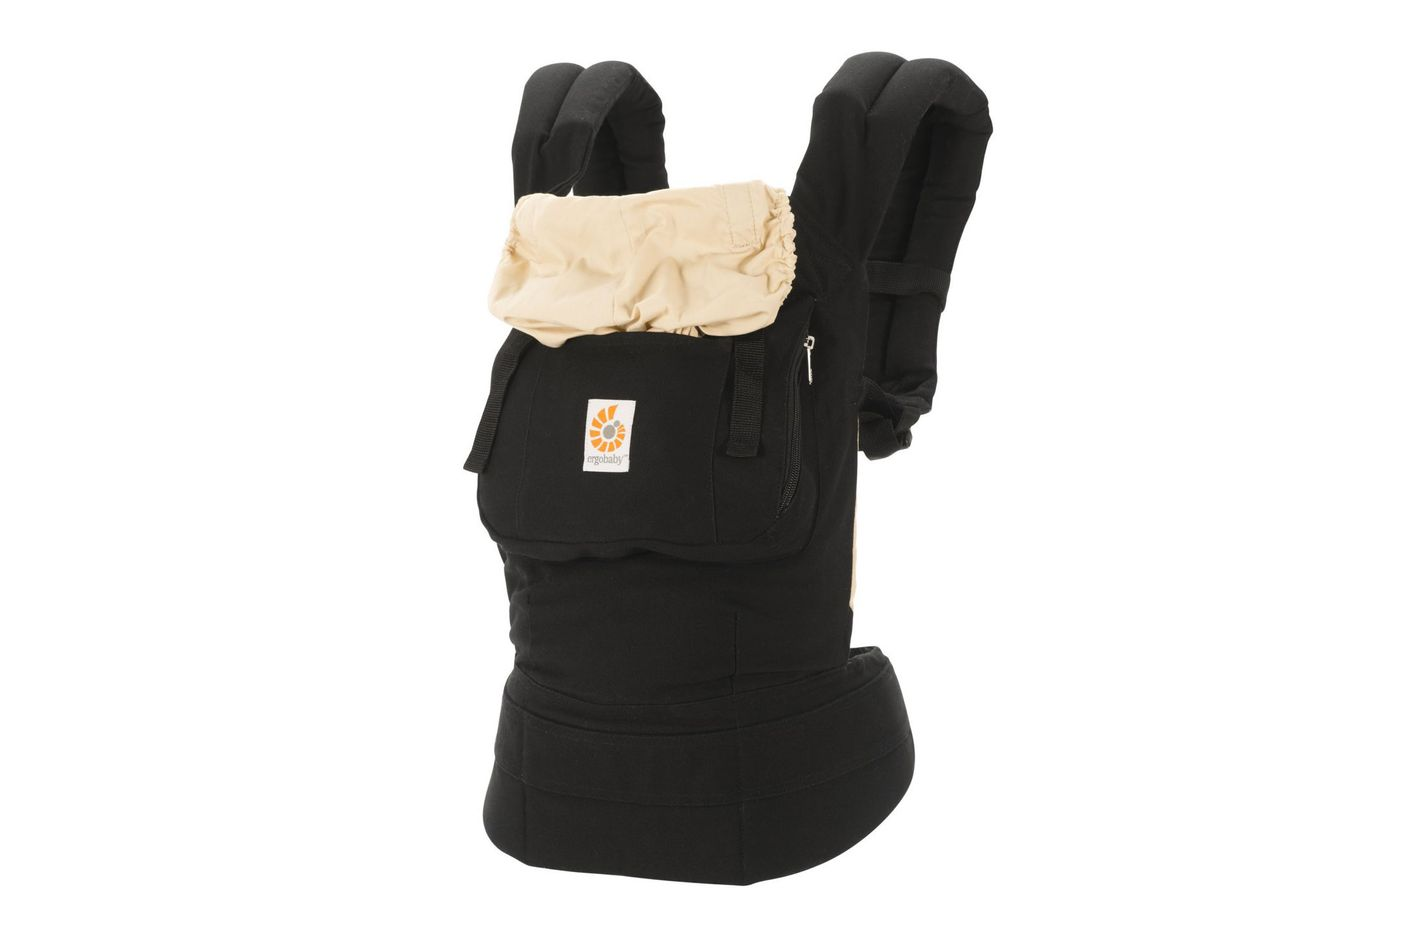 Ergobaby Original Position Carrier